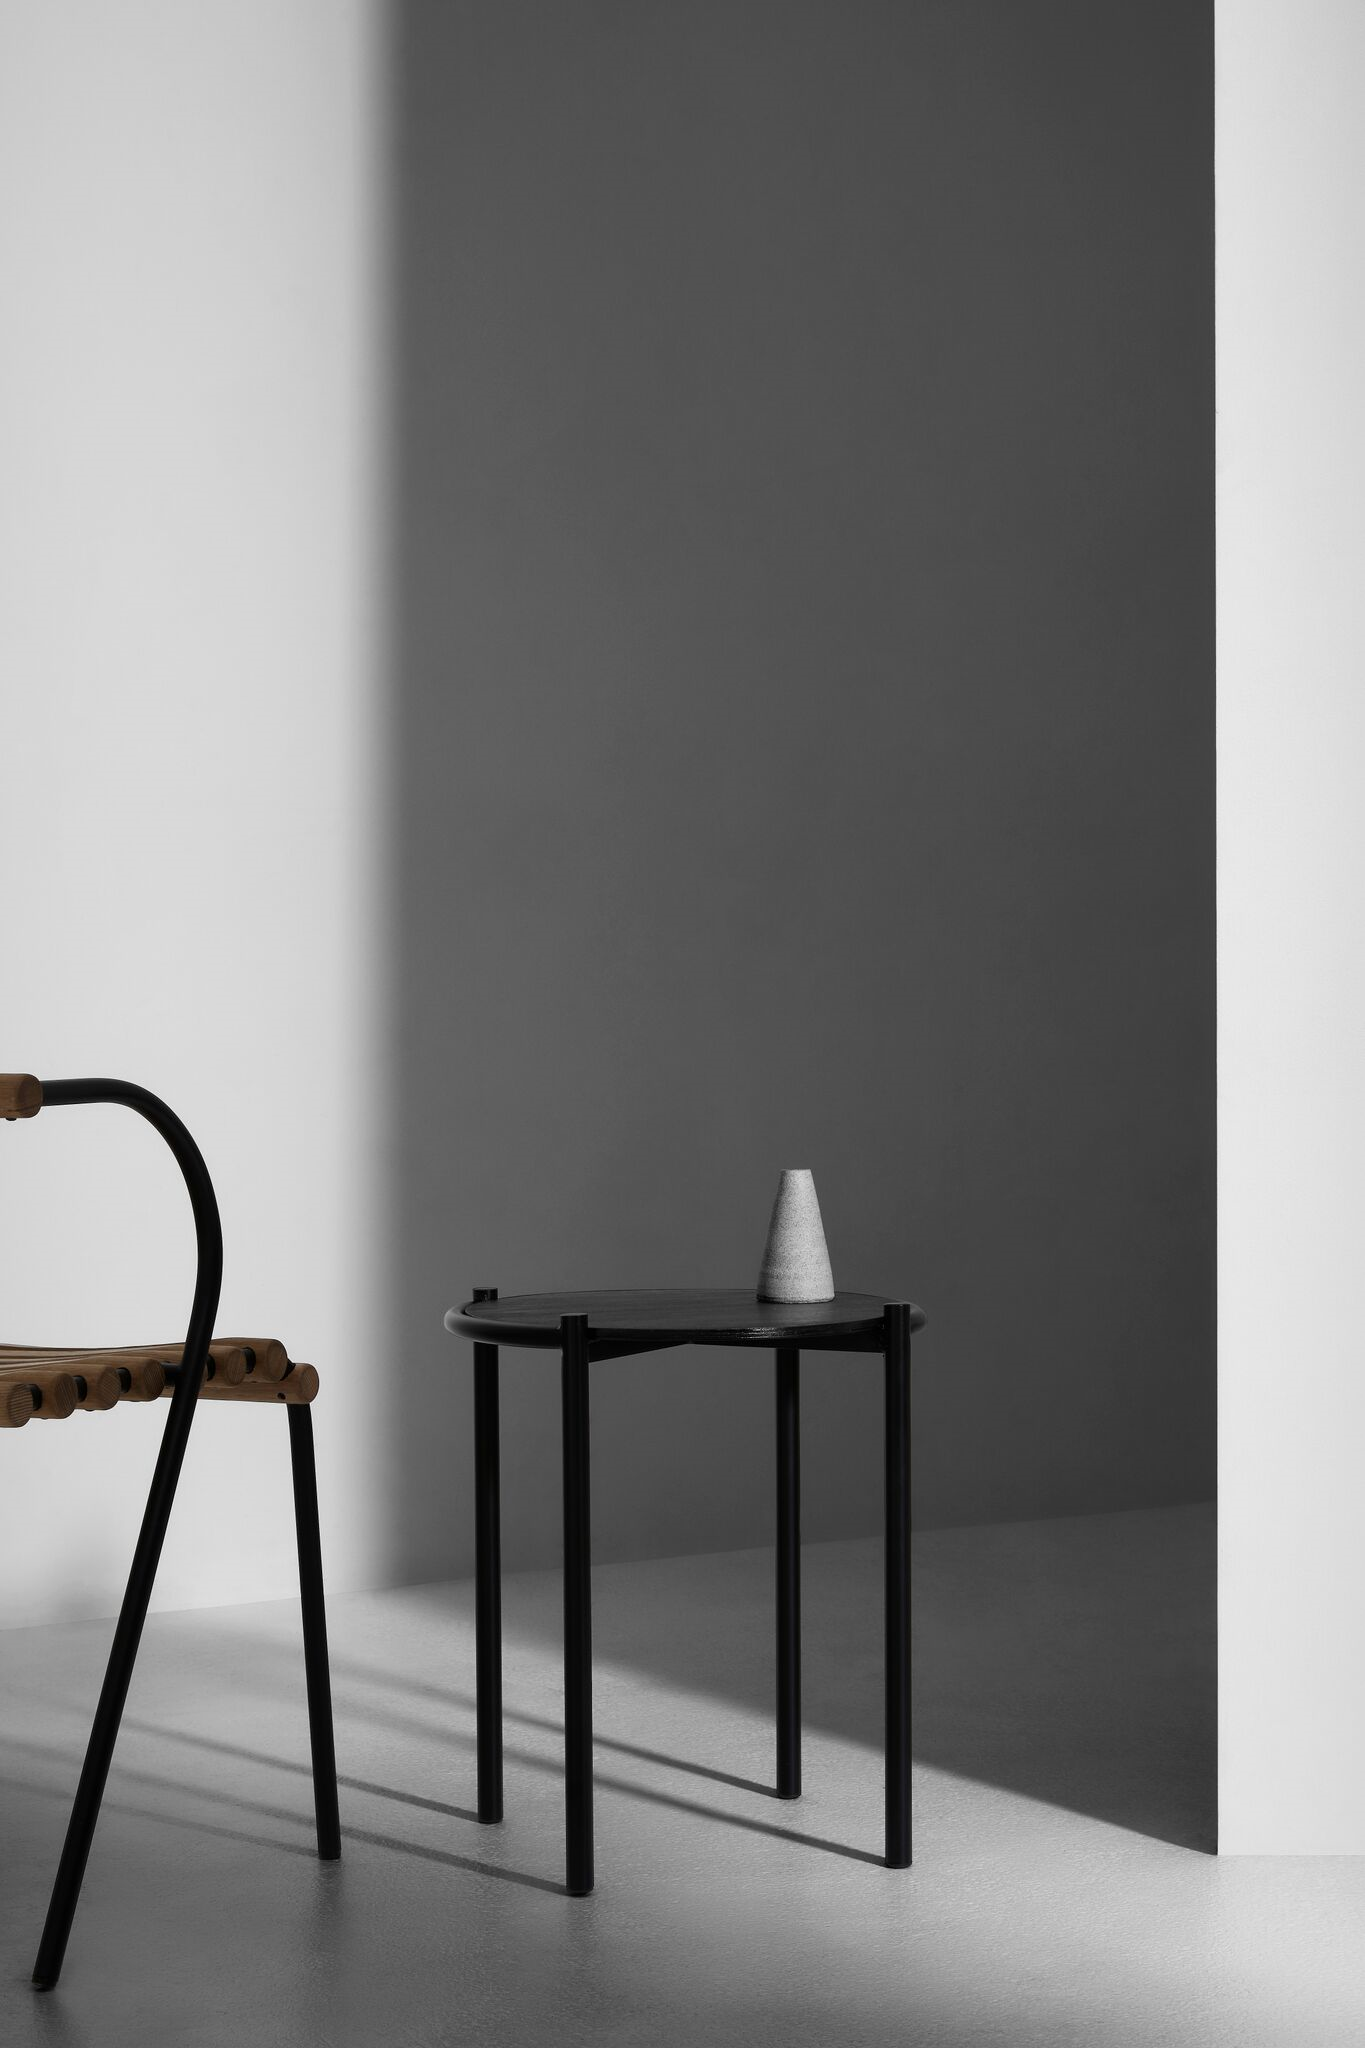 Gallery Of Side Table By Fomu Local Australian Furniture Design Melbourne, Vic Image 1